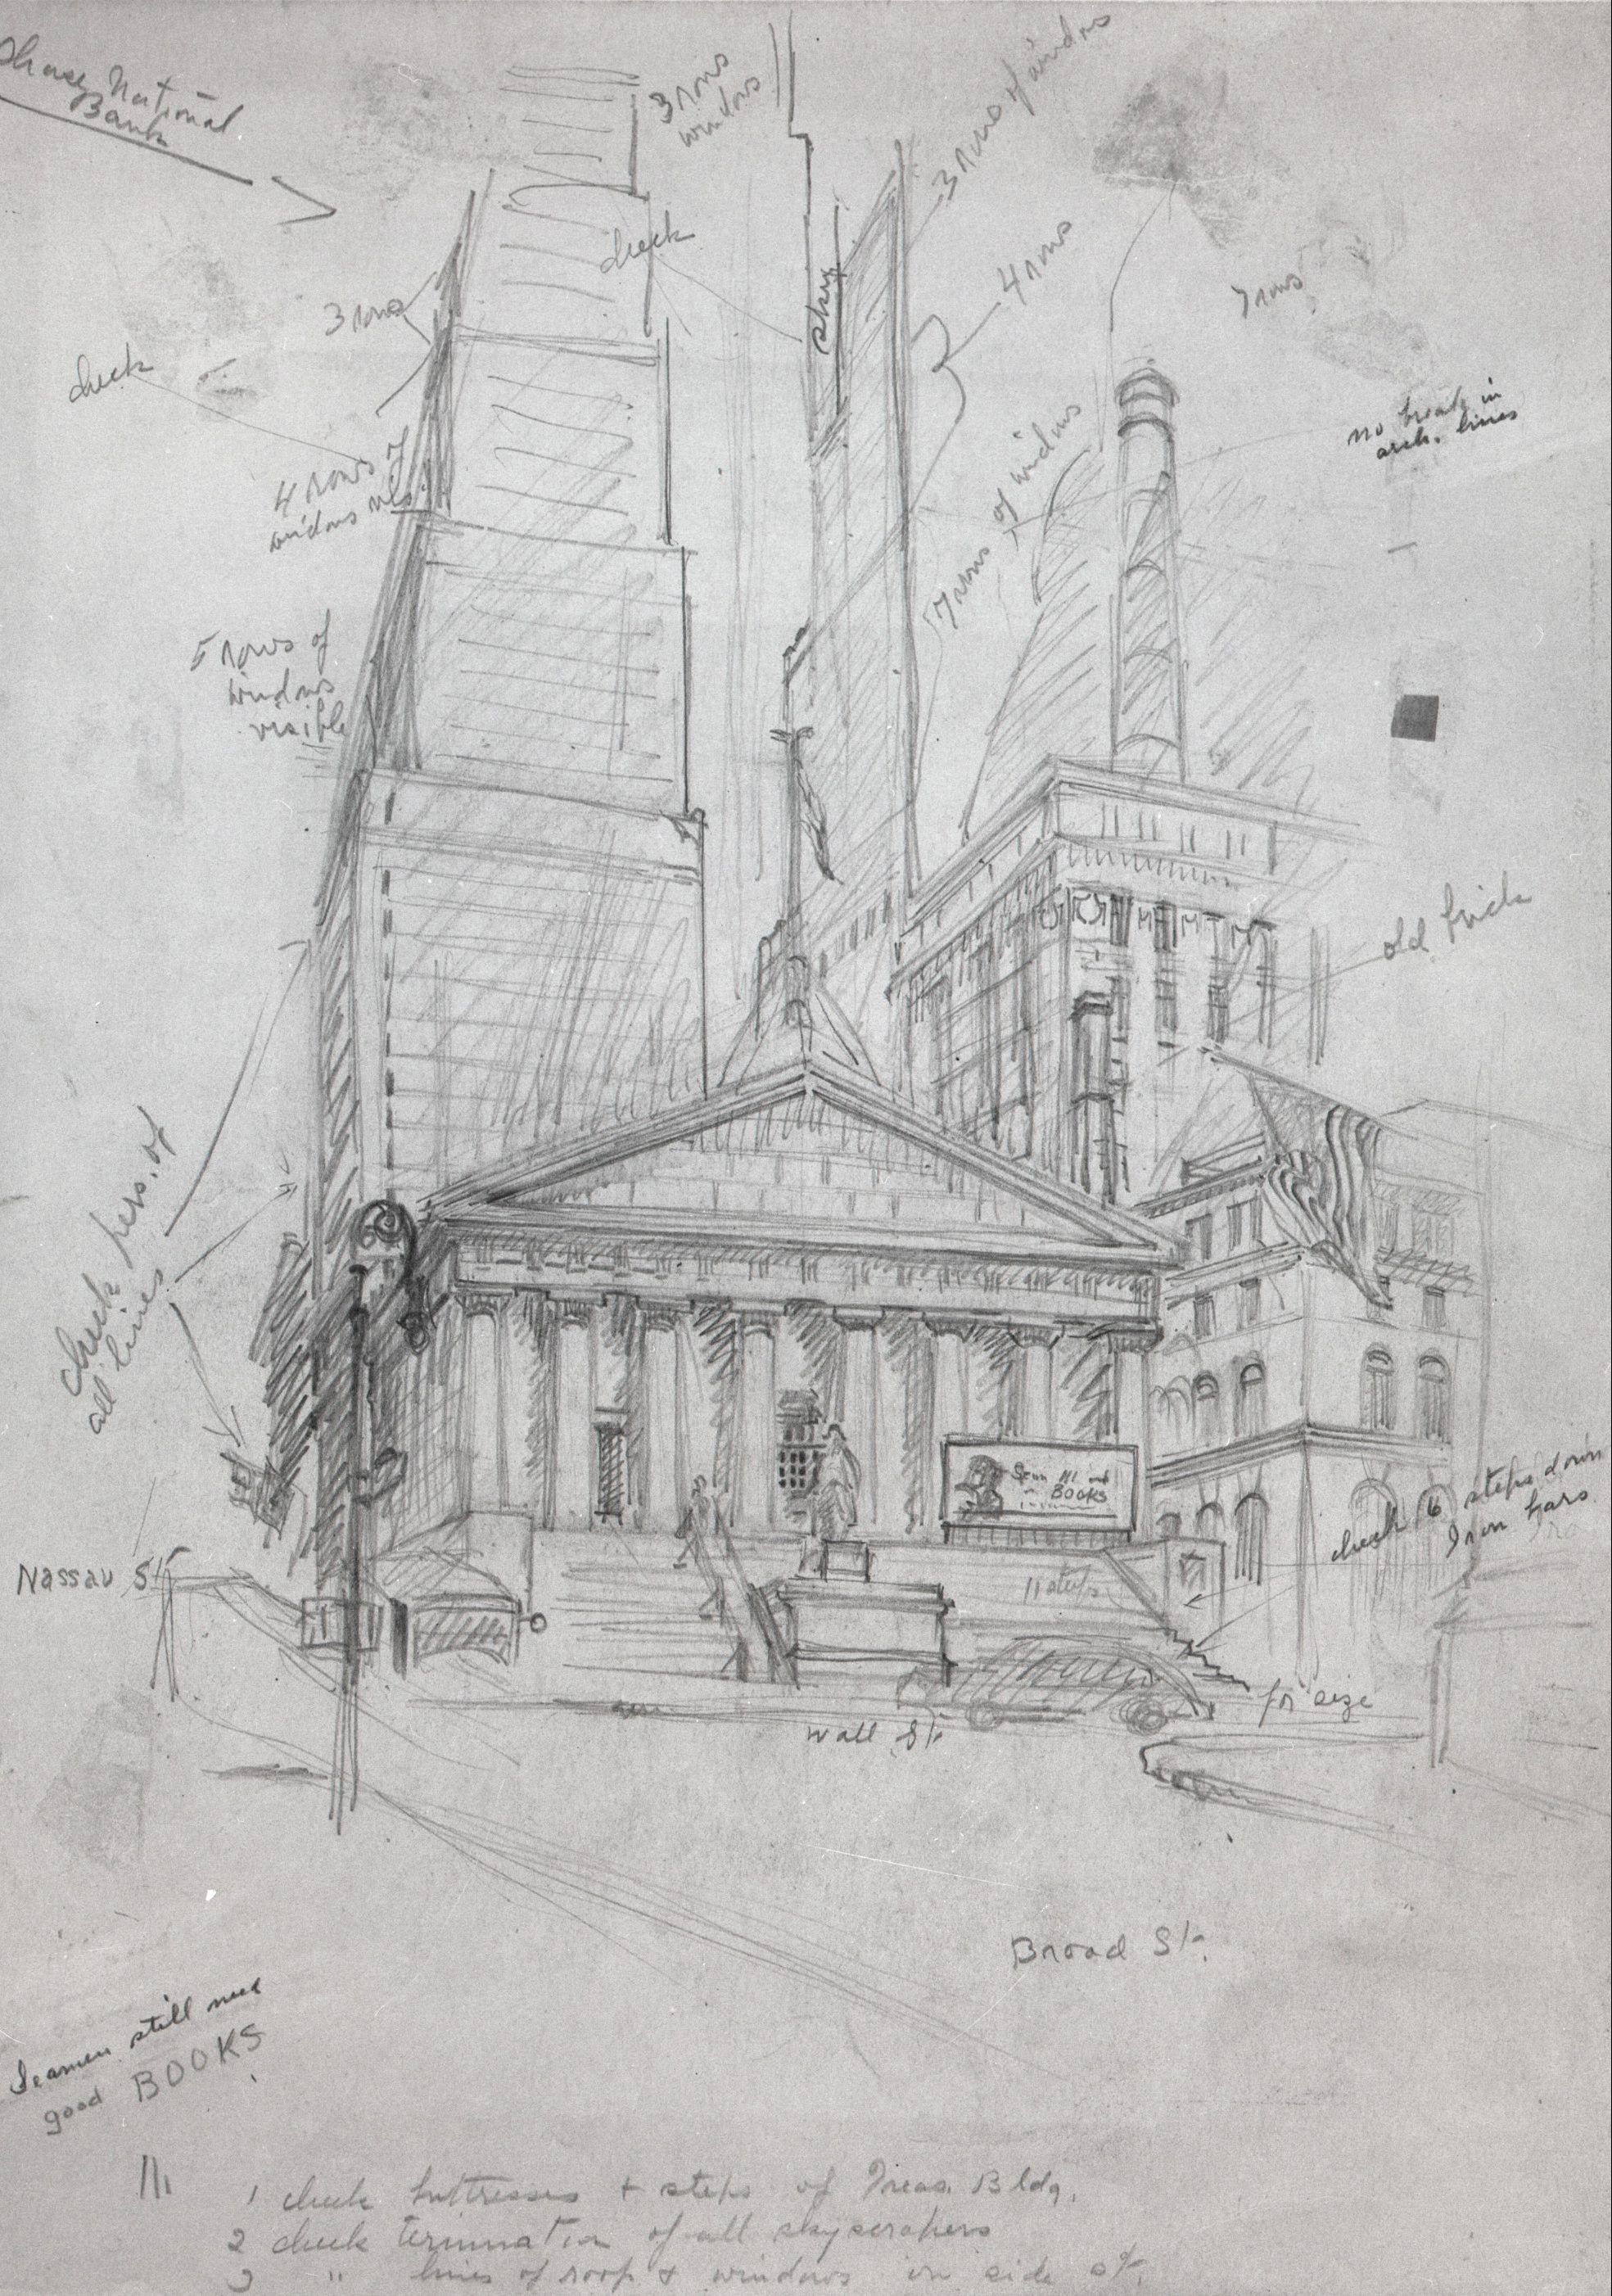 A pencil sketch of a cityscape showing a Greek Revival building behind which skyscrapers tower. Outlines of a car and a pedestrian dot the street and sidewalk in front of the building. Handwritten notes in cursive dots the drawing, pointing to different elements.